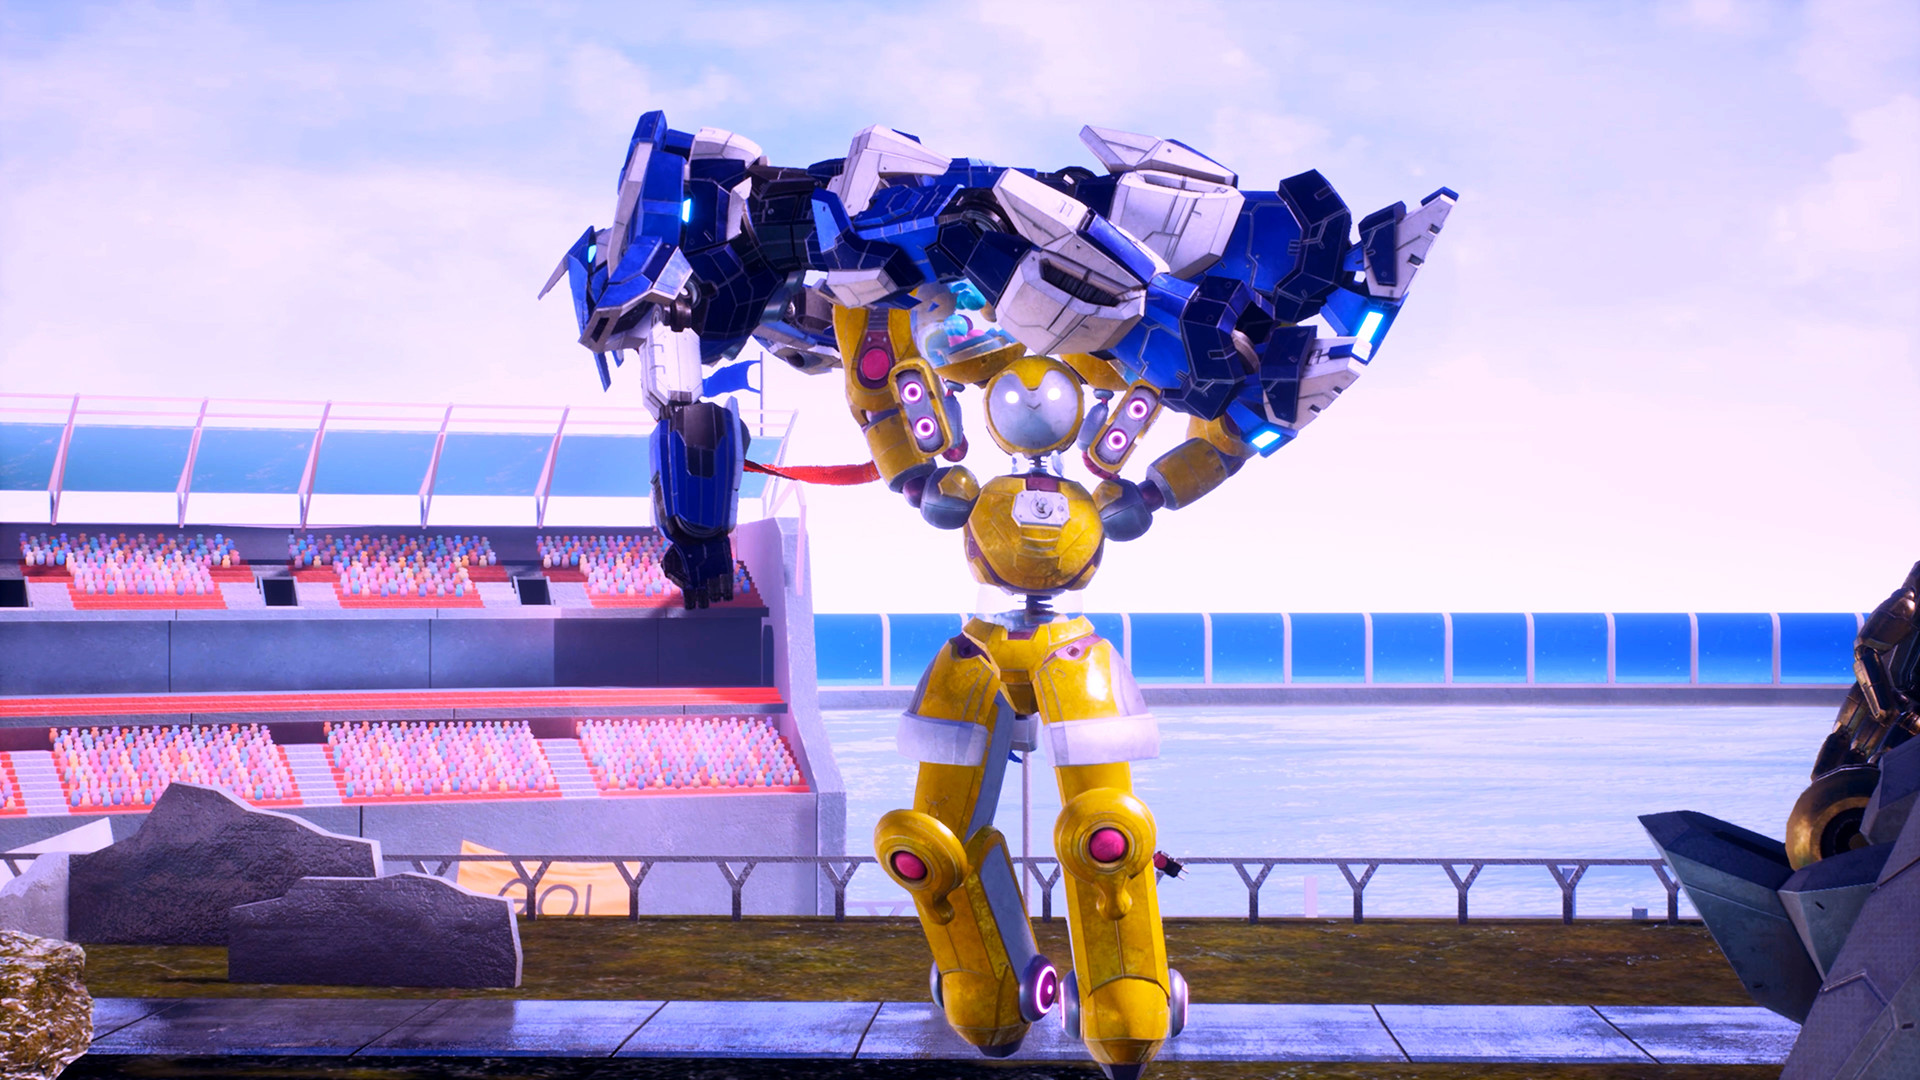 Talking Giant Robots With The Override 2 Team